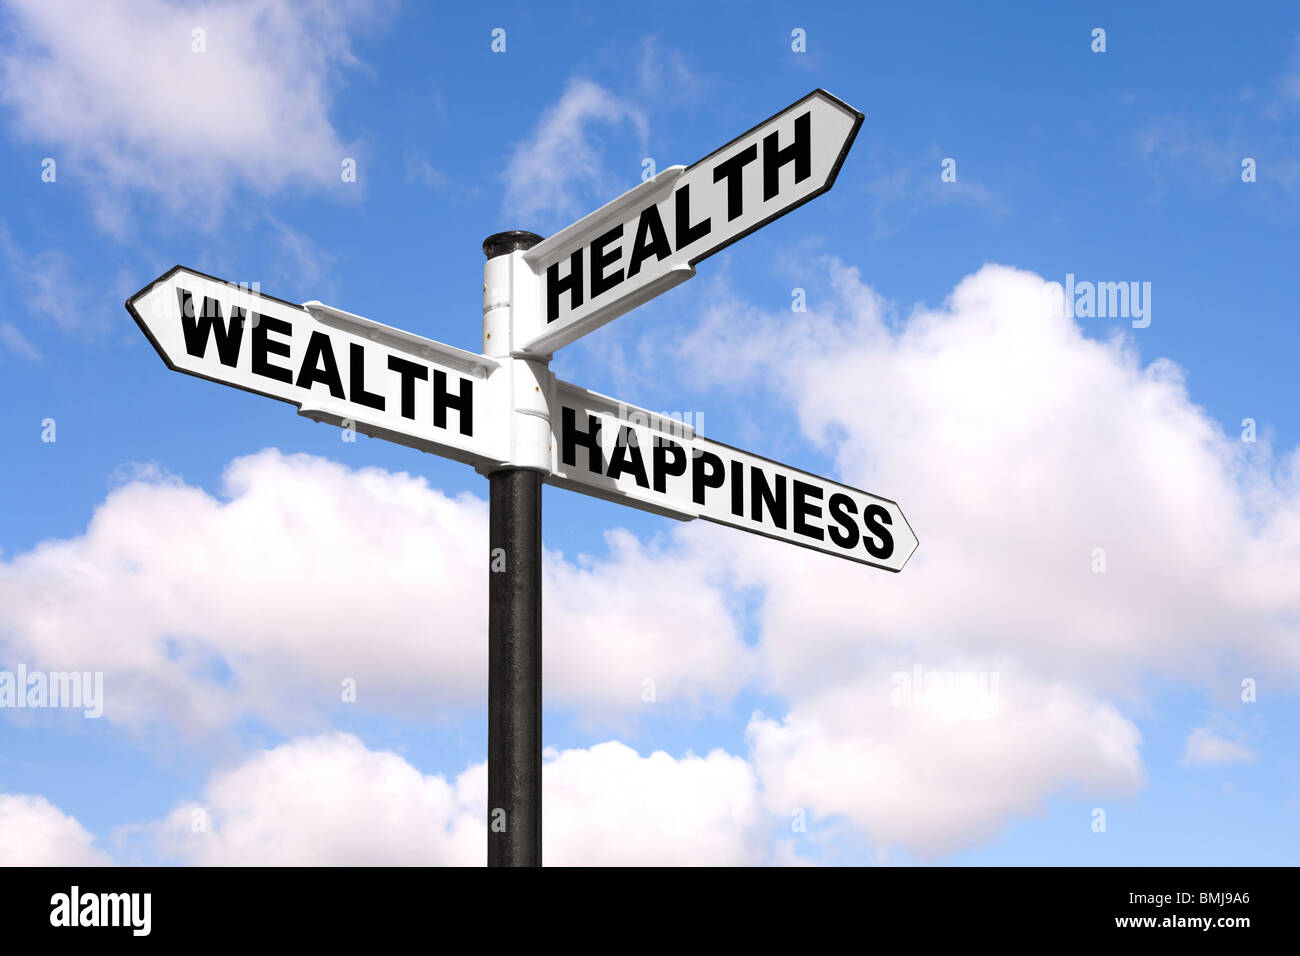 Black and white signpost with the words Health, Wealth and Happiness against a blue cloudy sky. - Stock Image